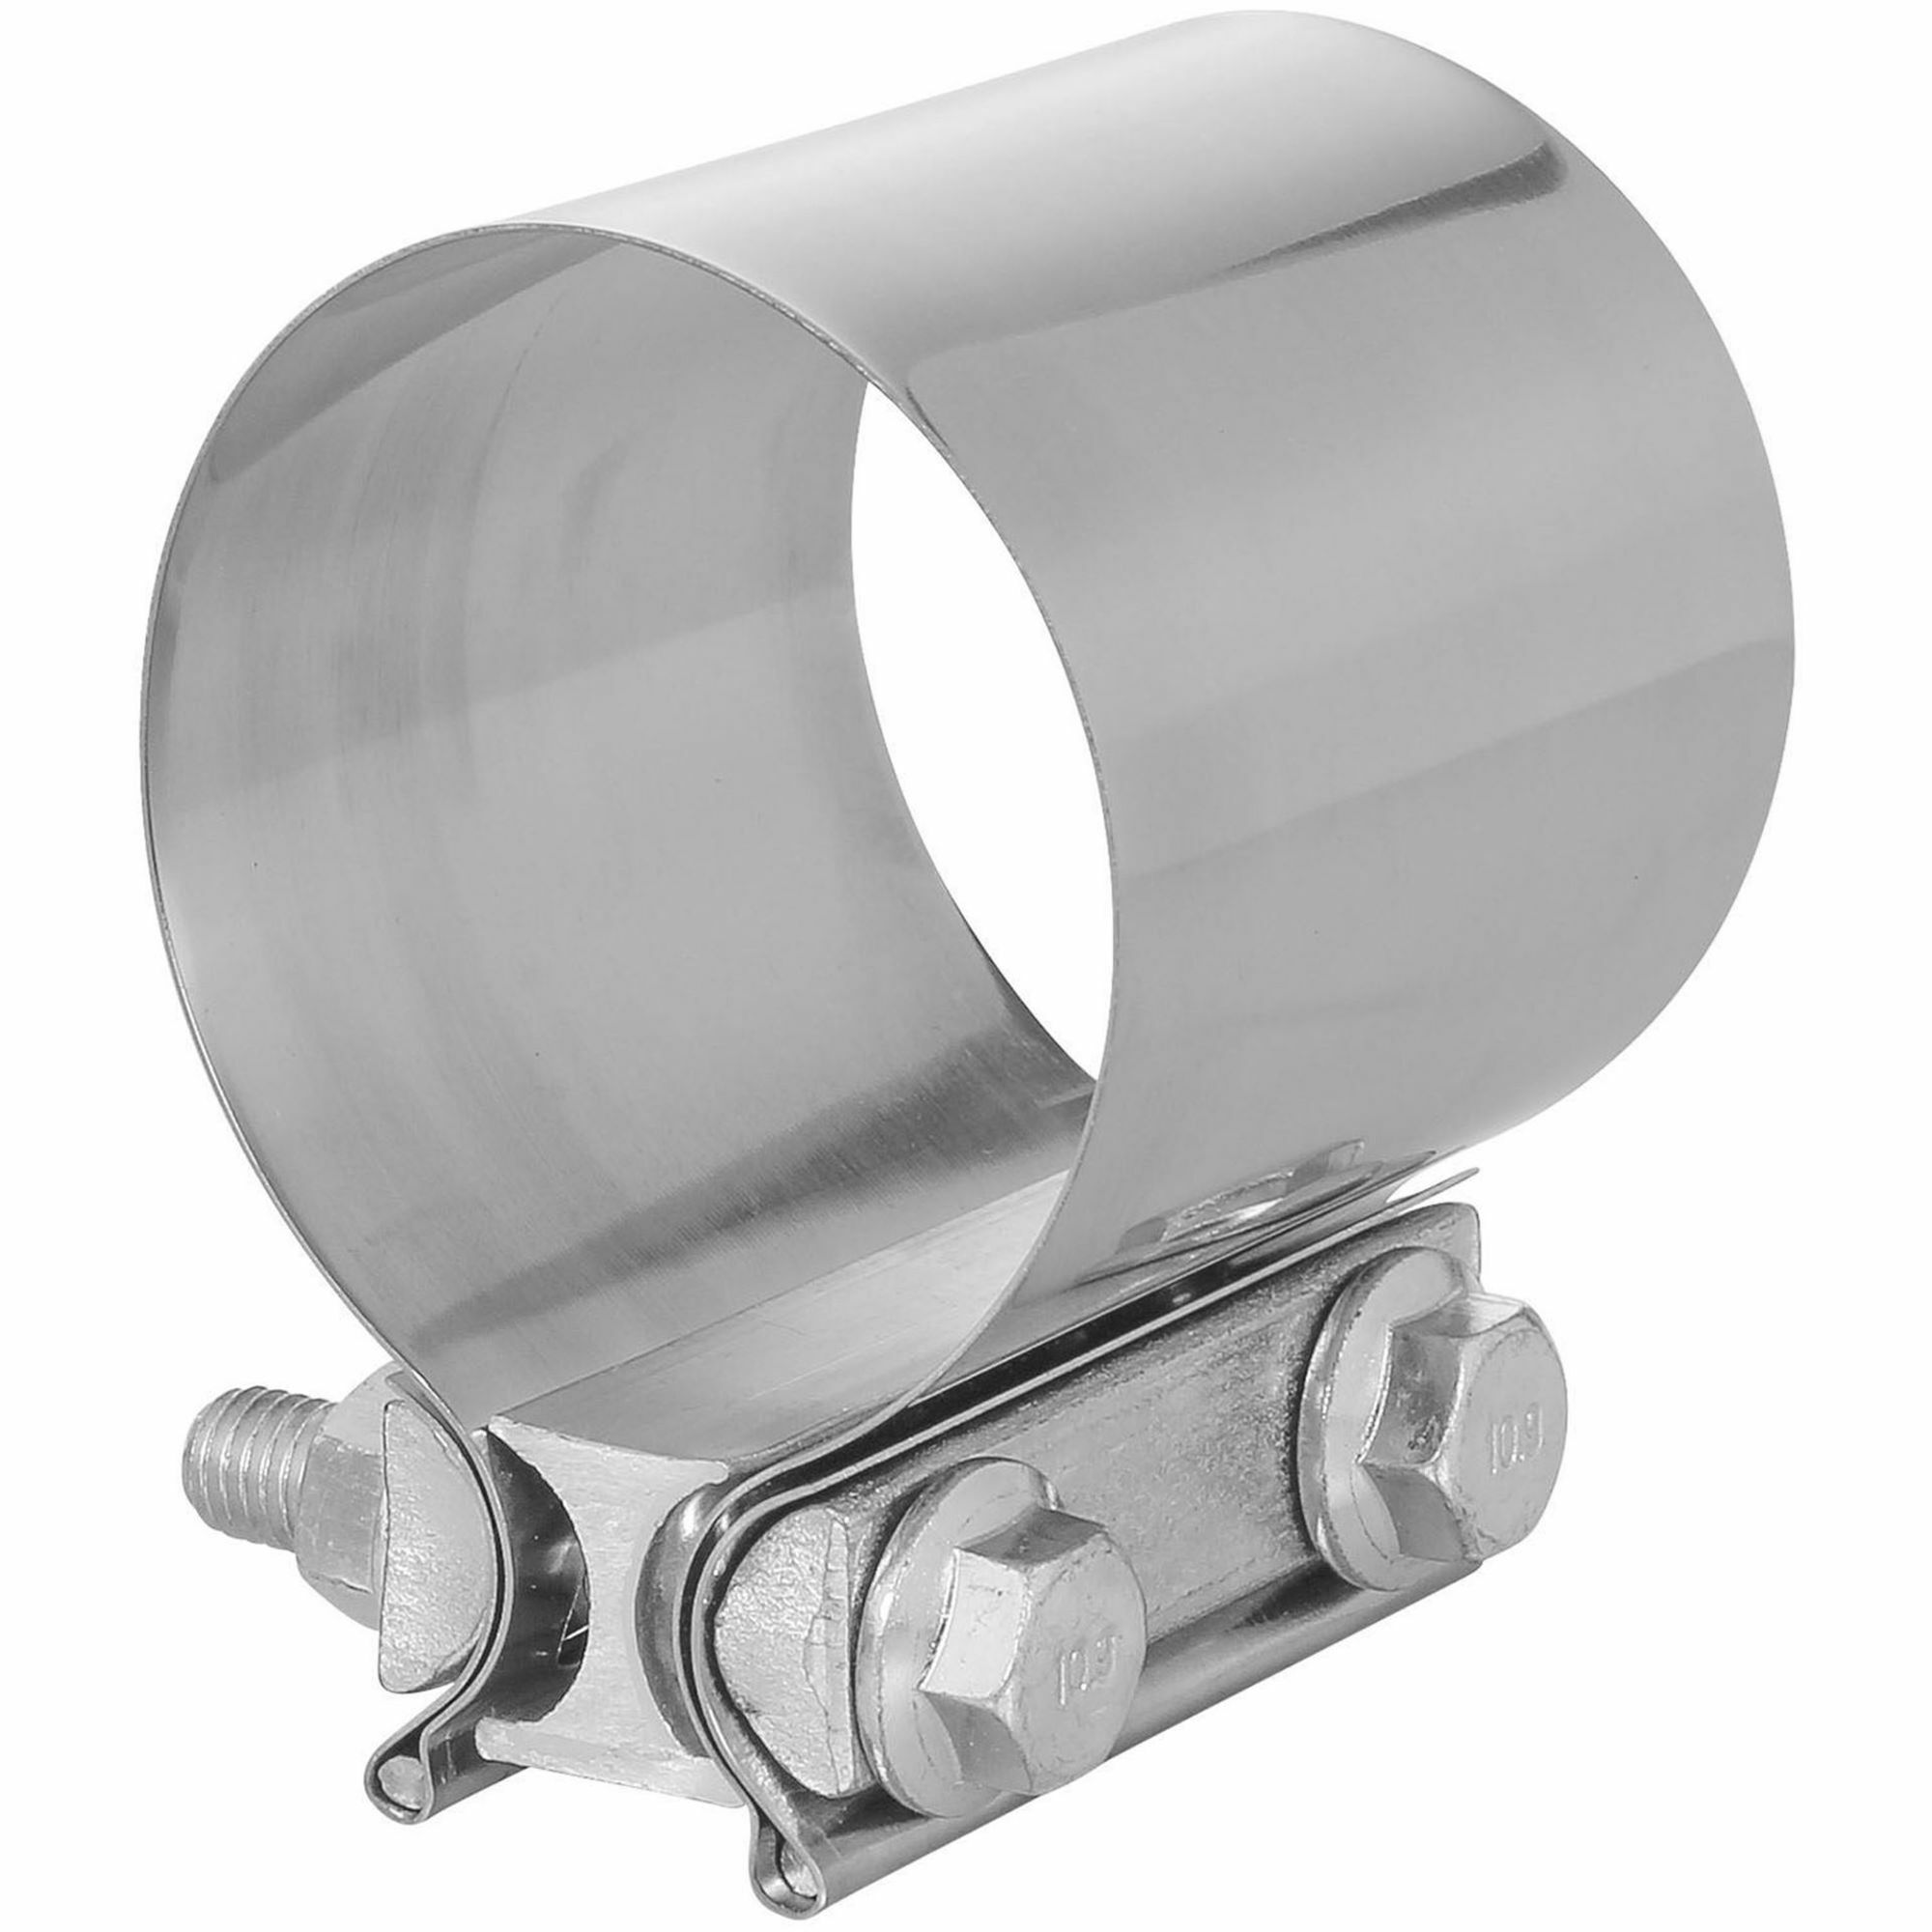 TOTALFLOW TF-JB56 Butt Joint Exhaust Muffler Clamp Band | 2 Inch